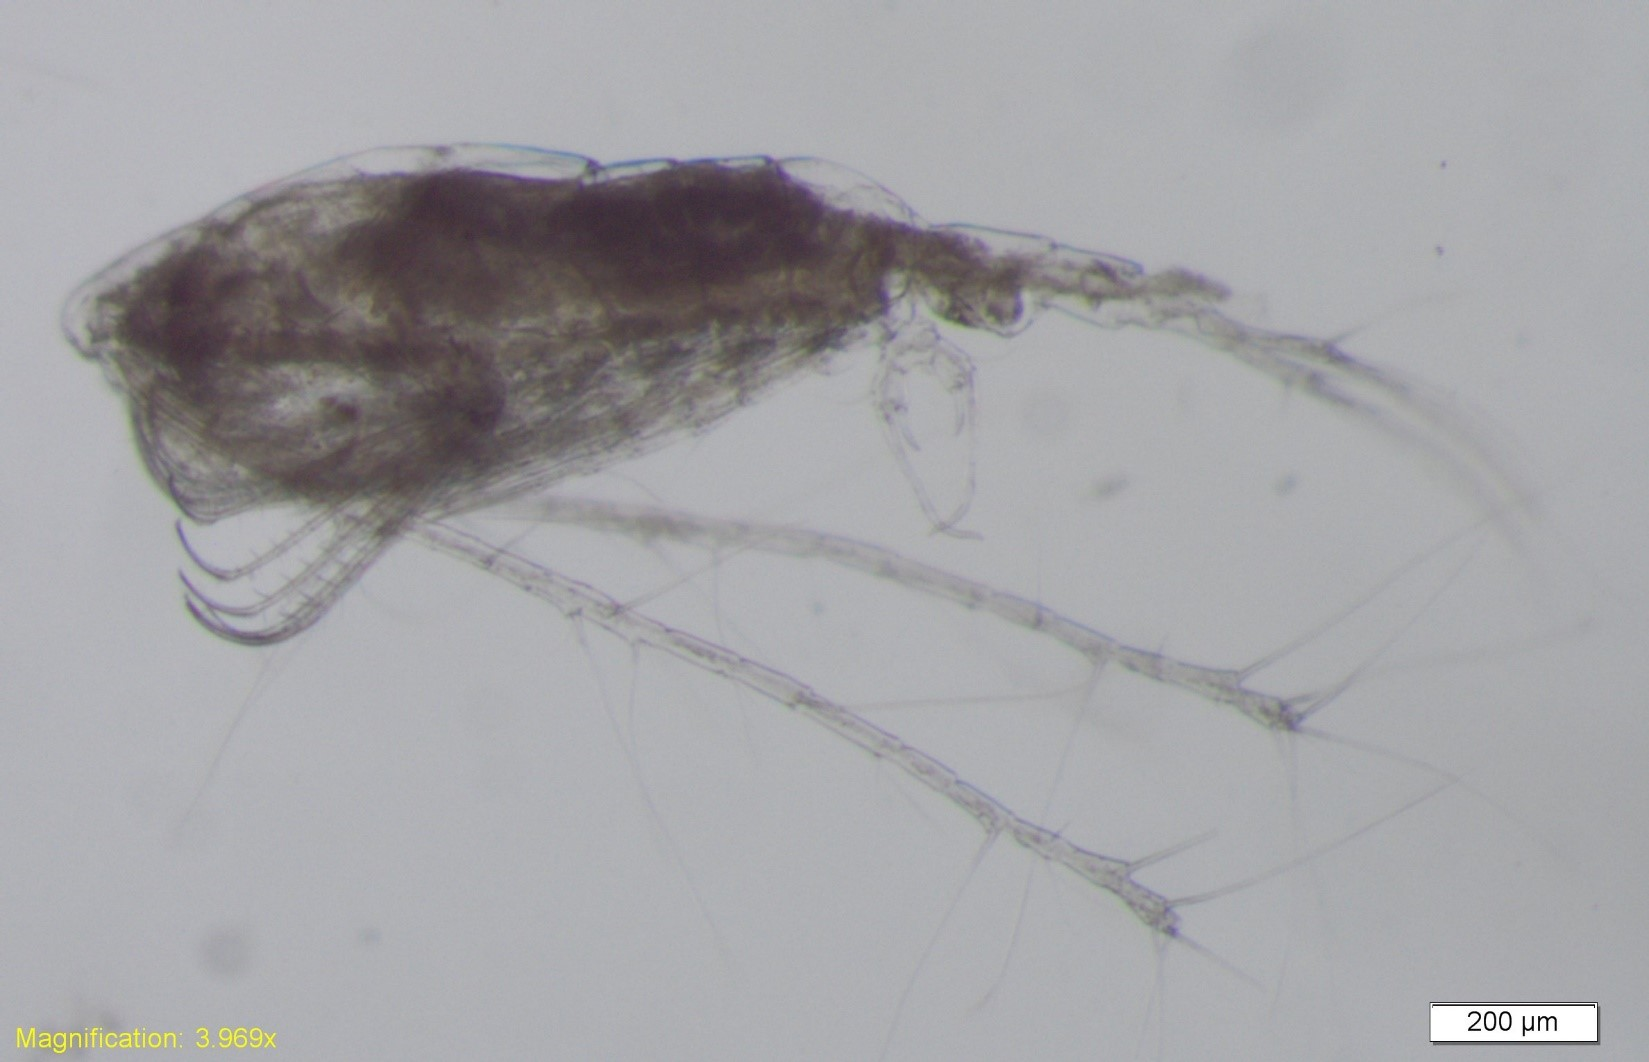 other zooplankton